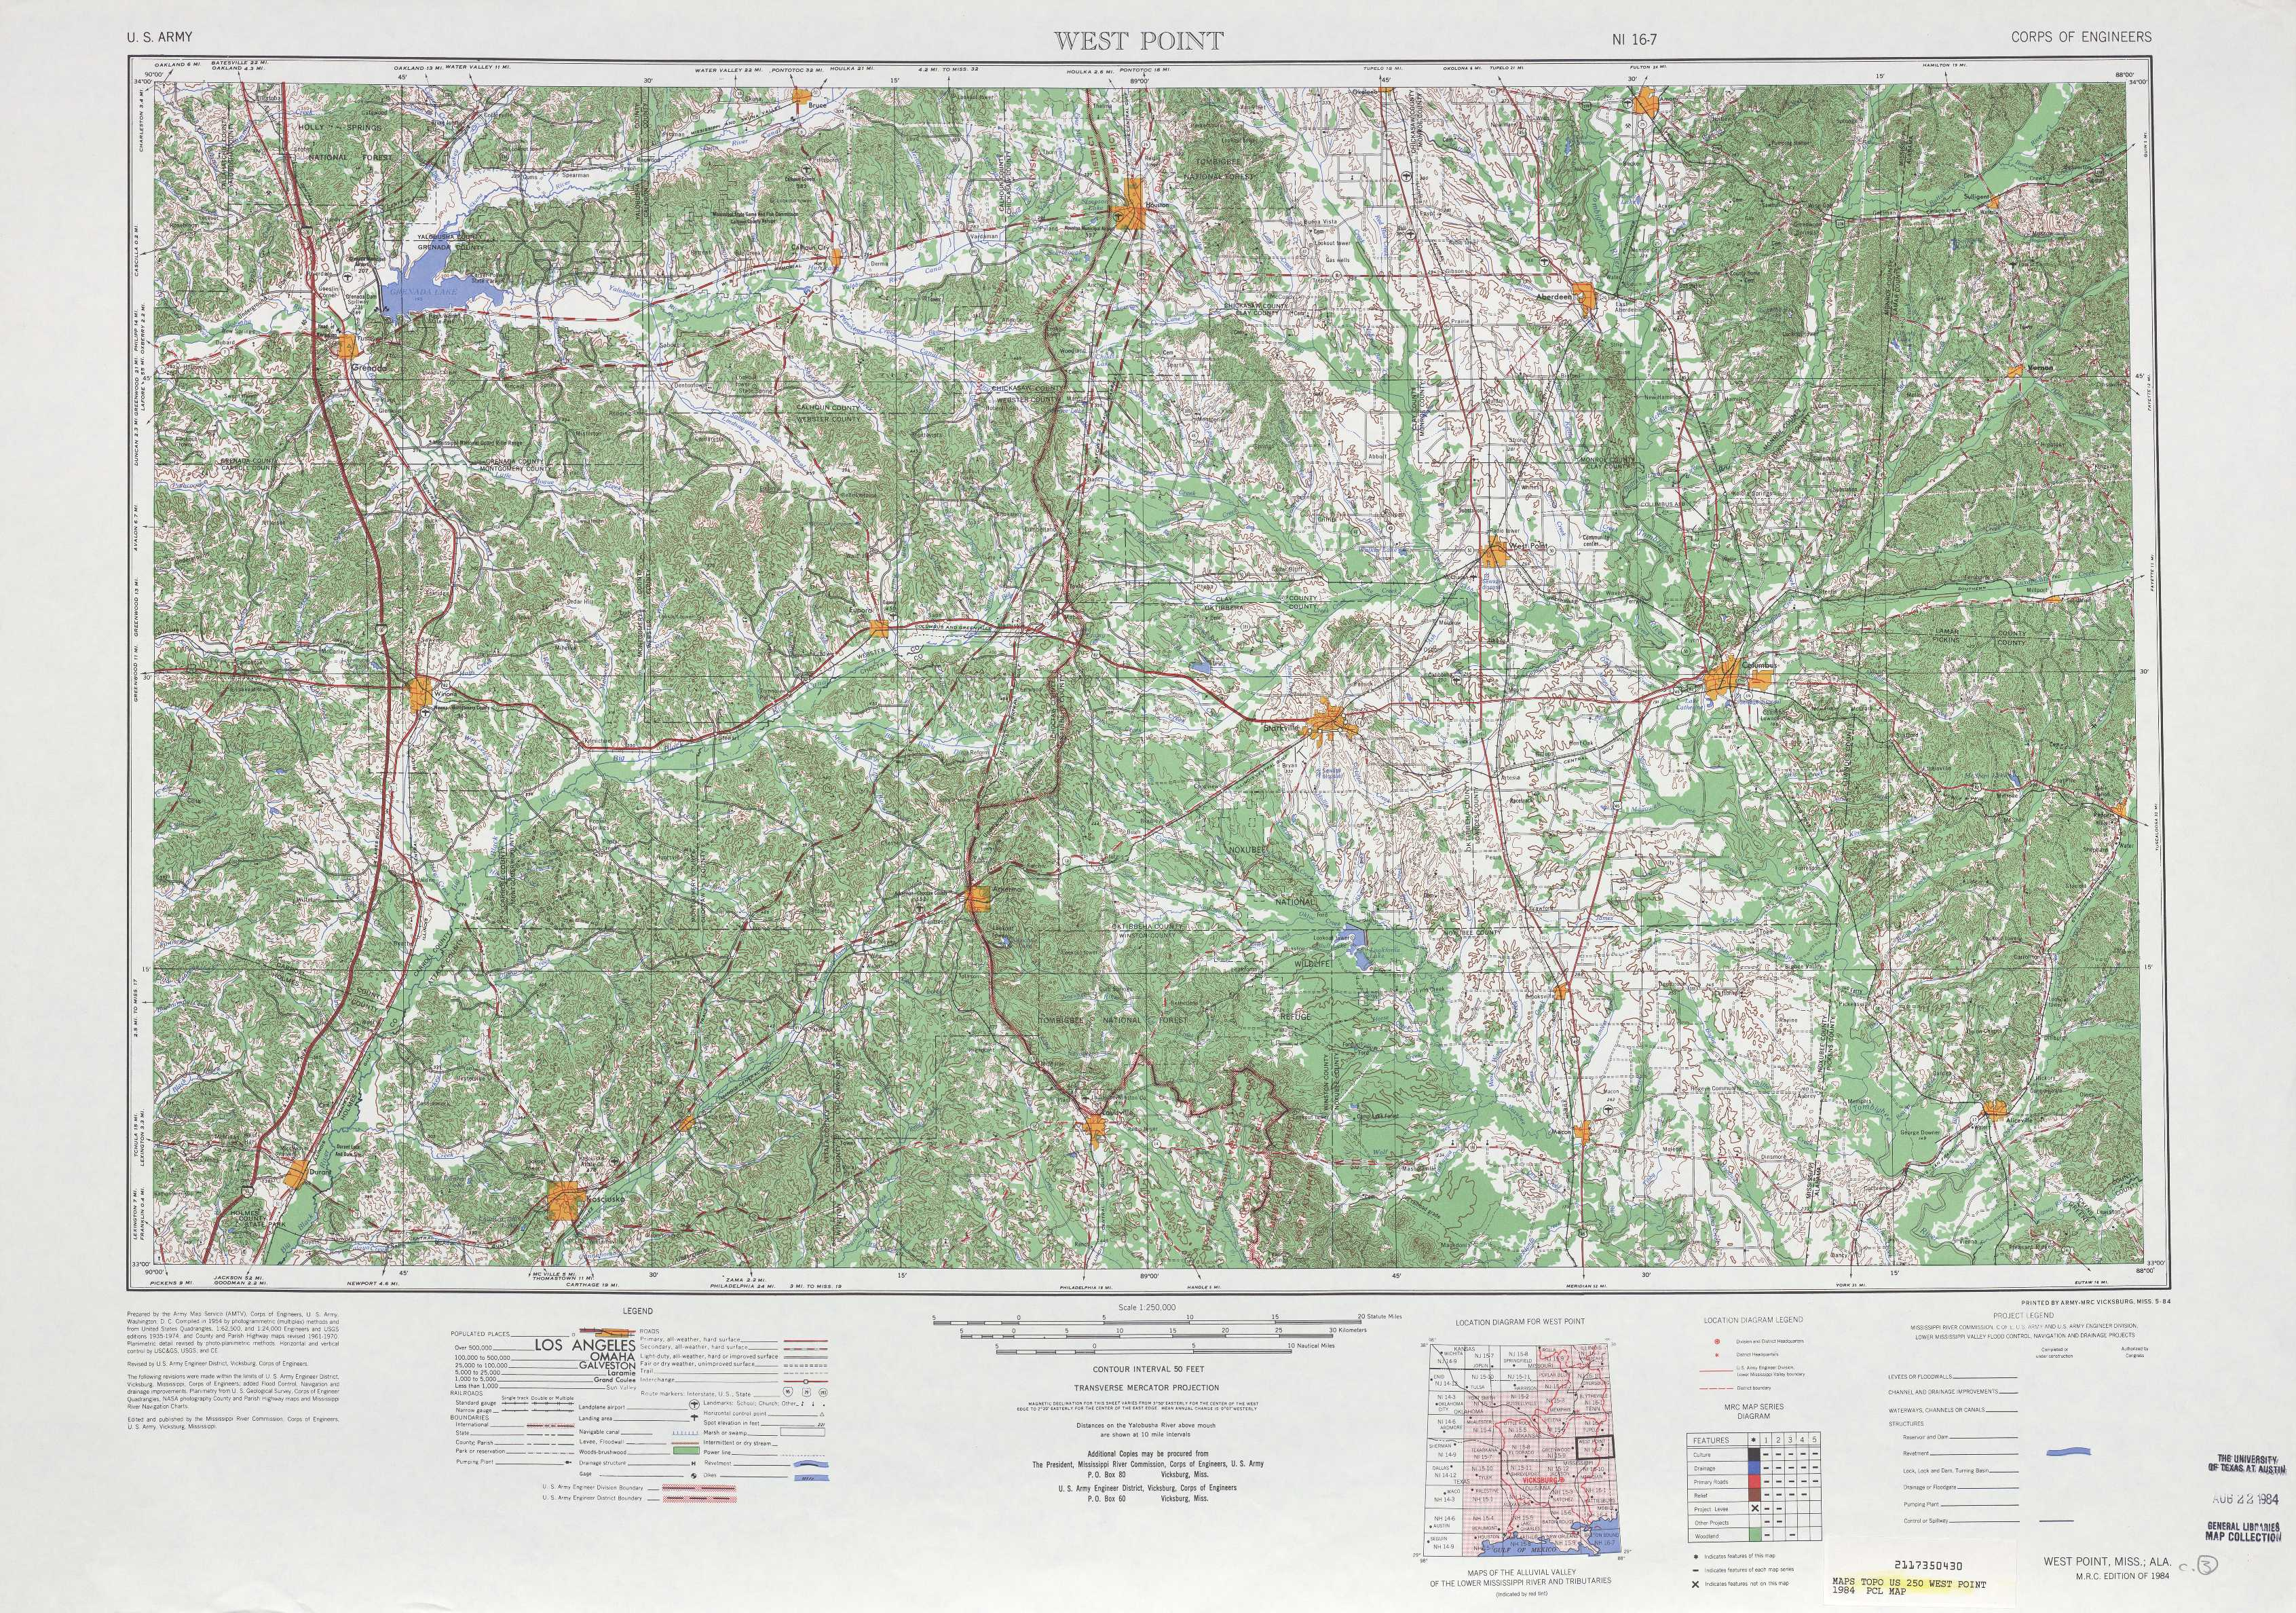 Topographic Map Mississippi.West Point Topographic Maps Ms Al Usgs Topo Quad 33088a1 At 1